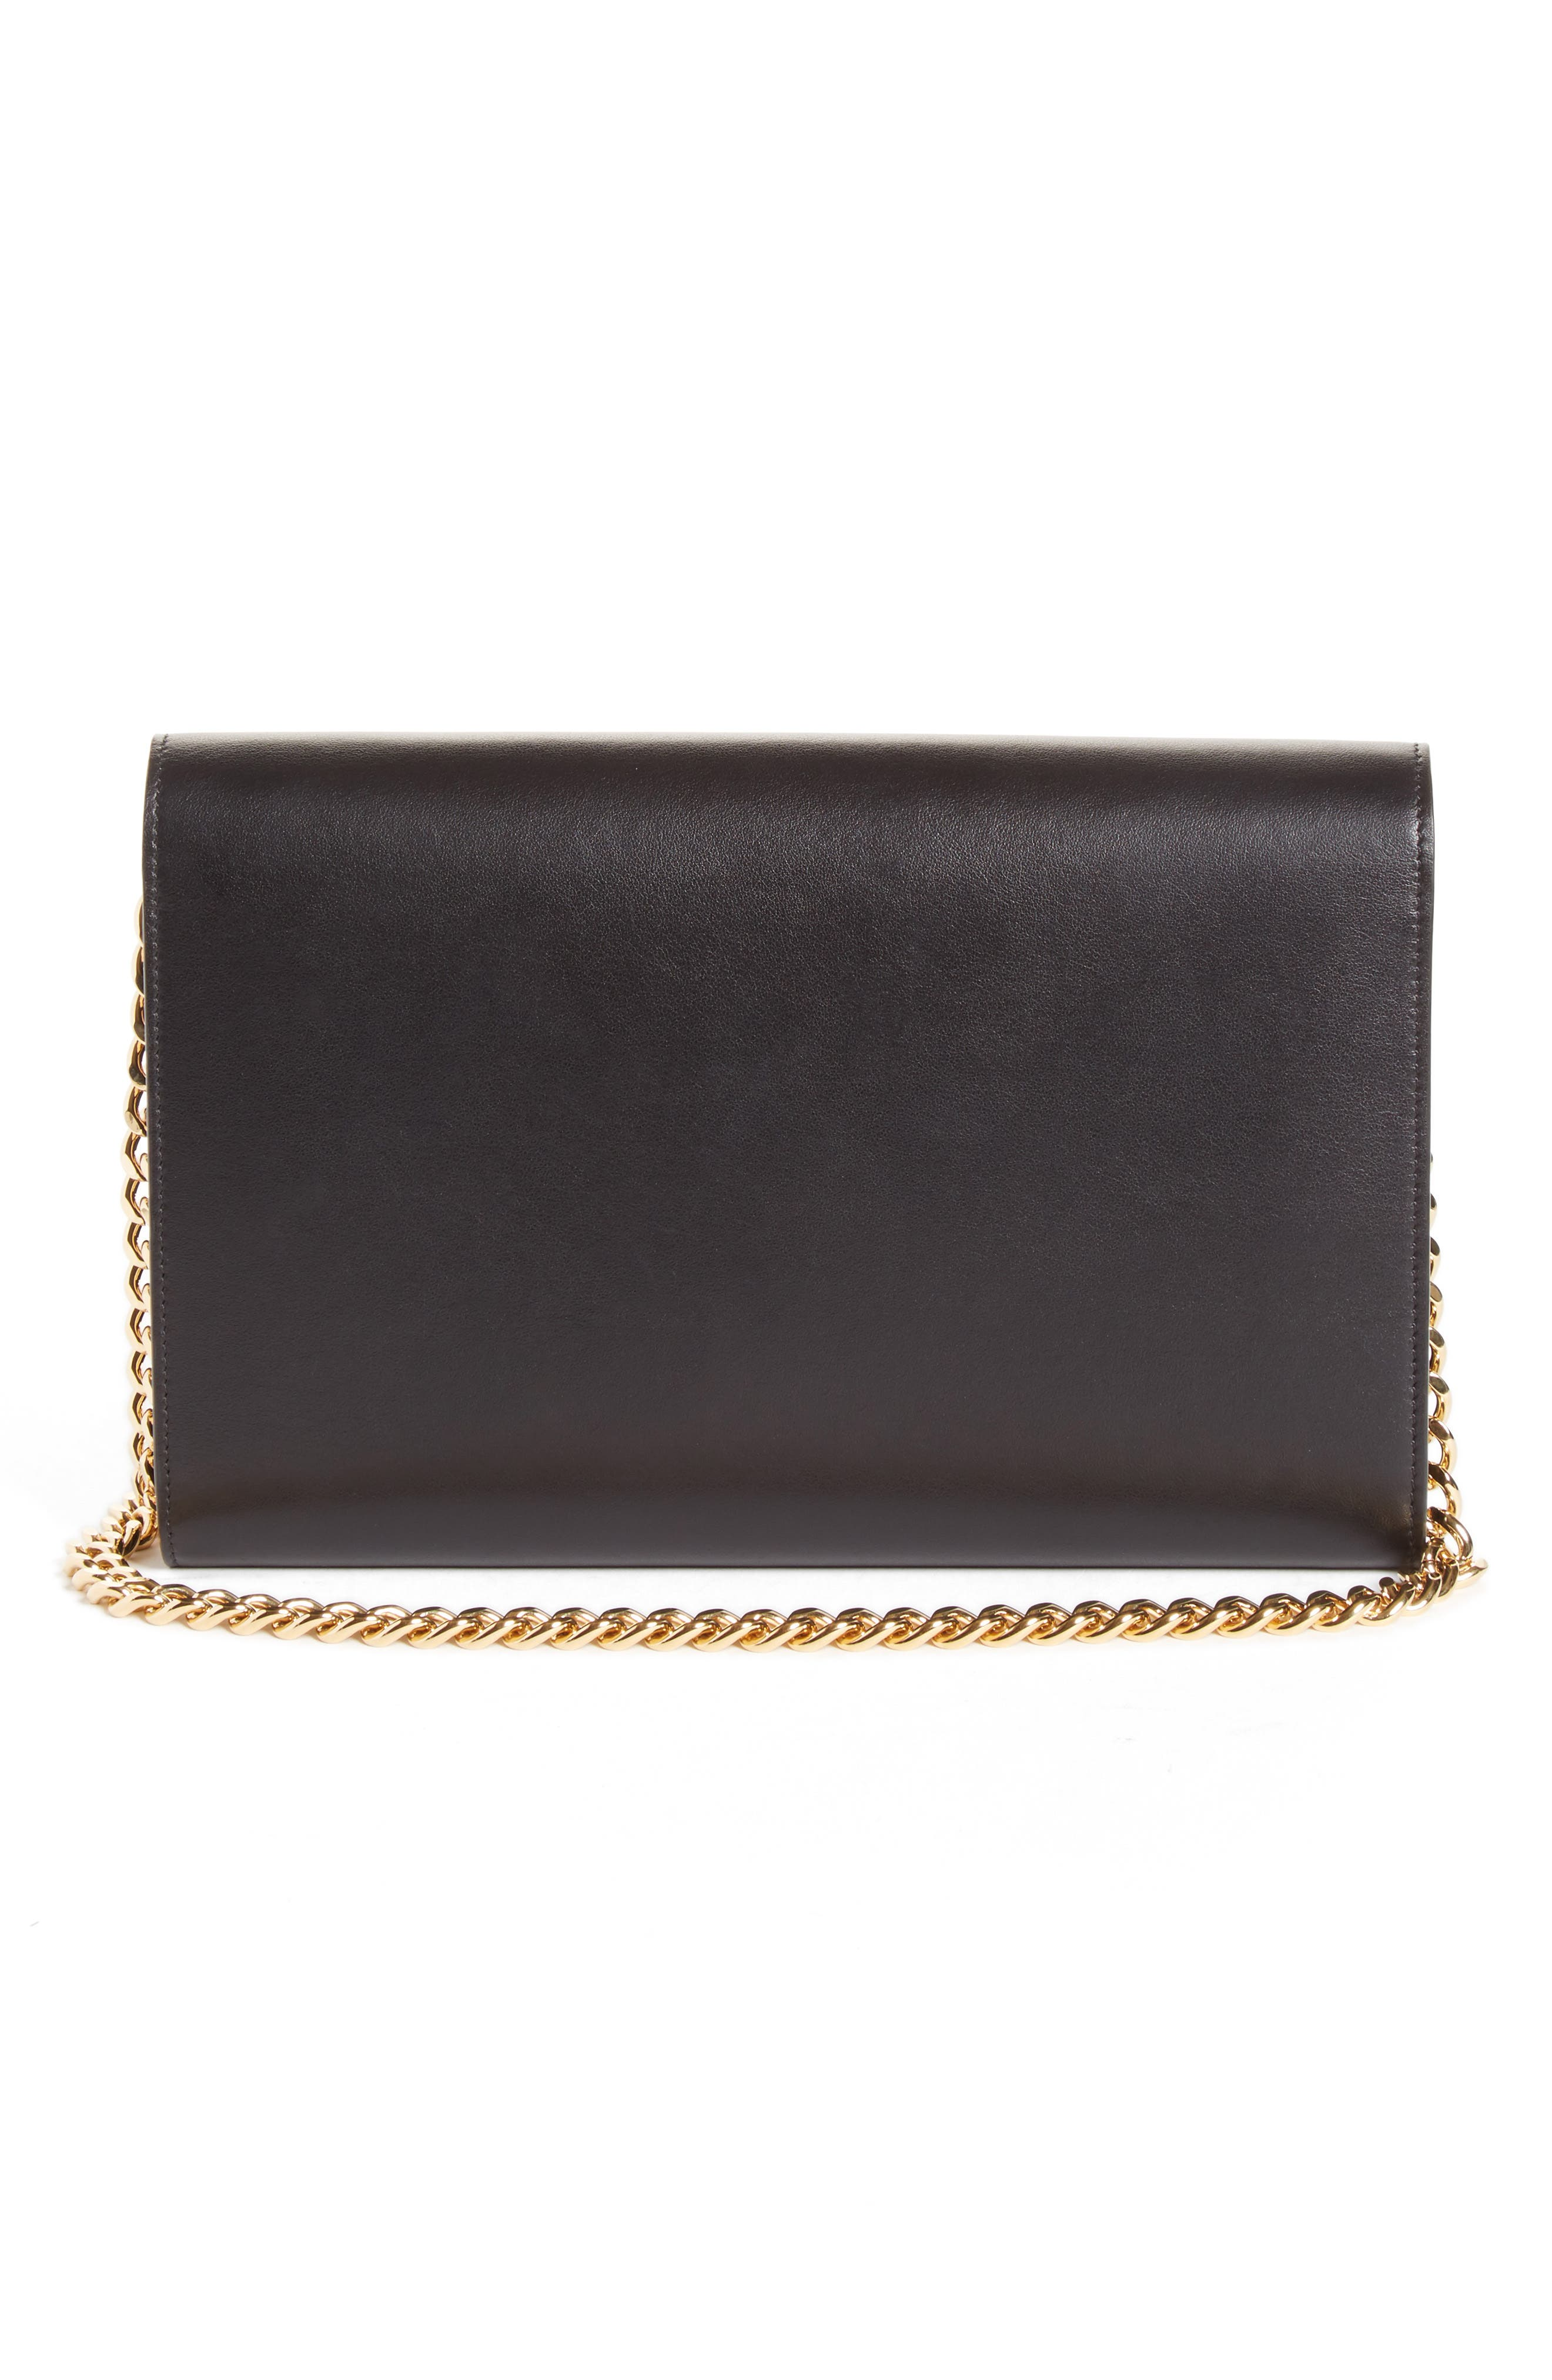 VICTORIA BECKHAM, Leather Wallet on a Chain, Alternate thumbnail 2, color, BLACK